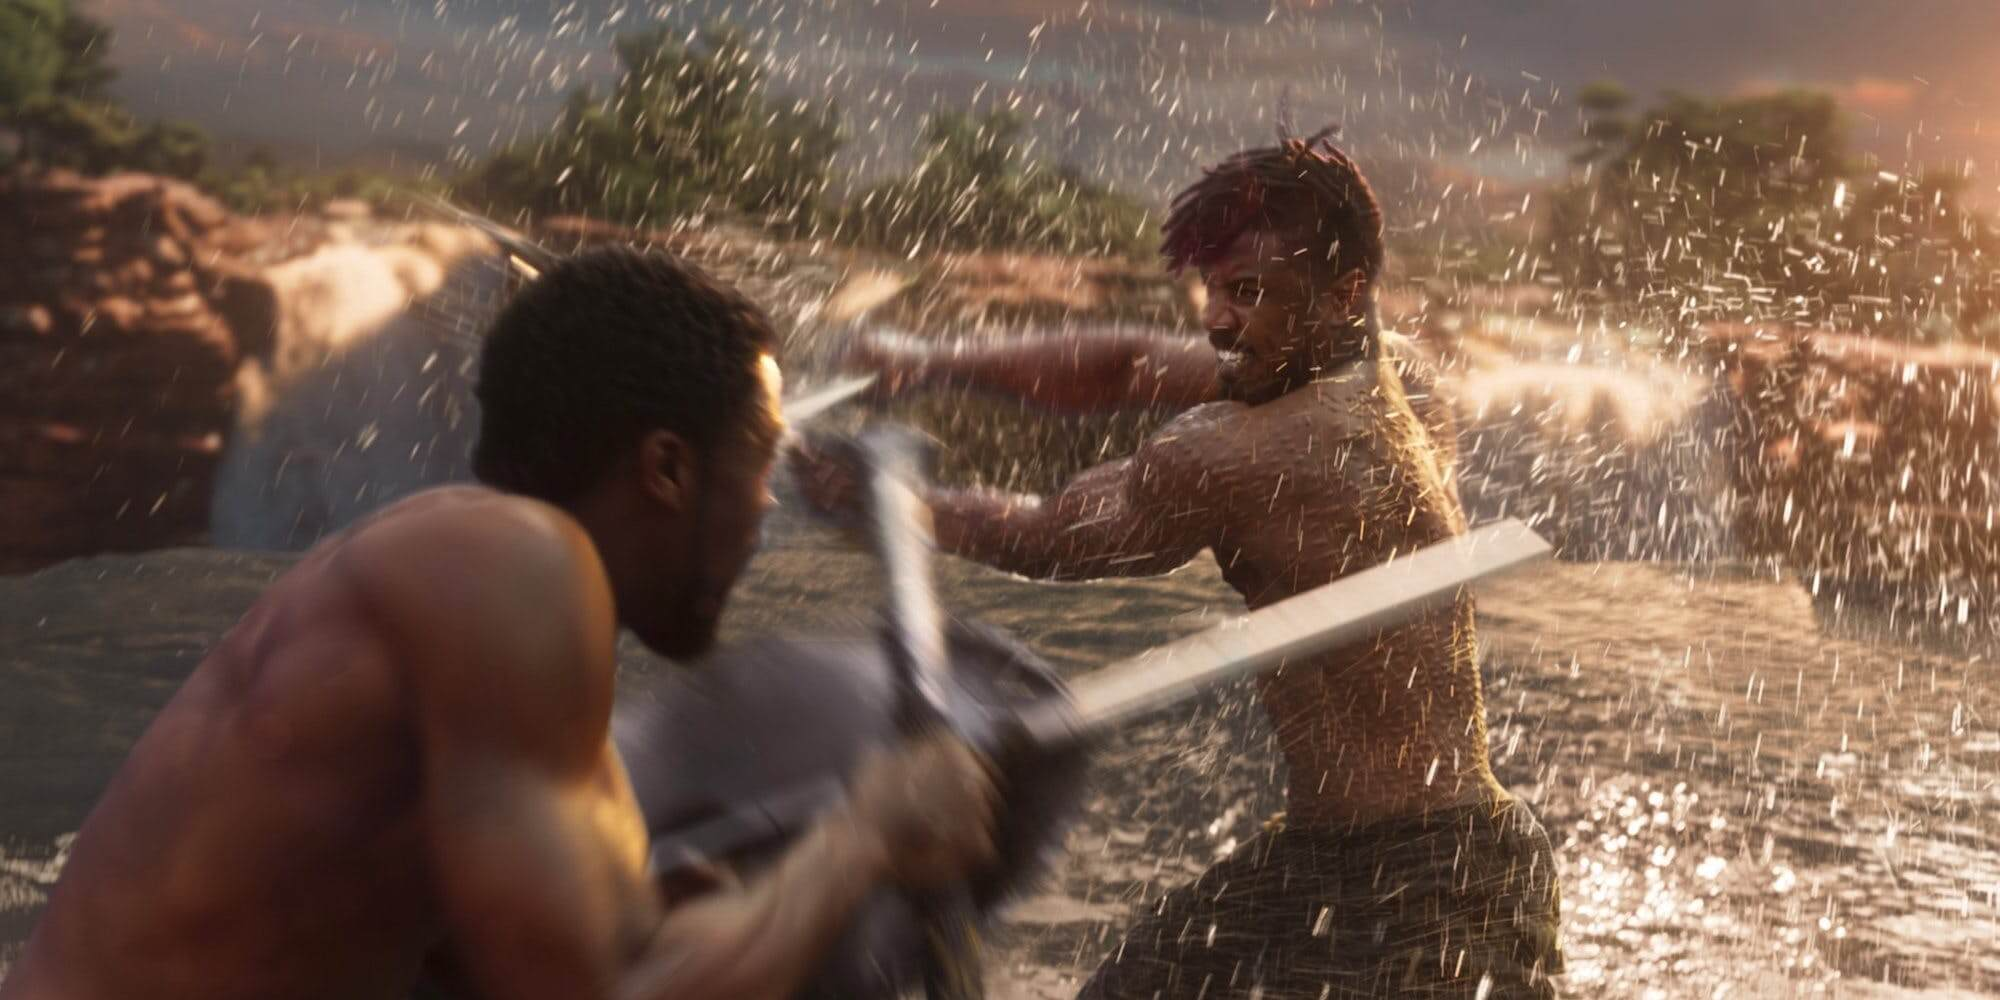 Black Panther Fight Scene